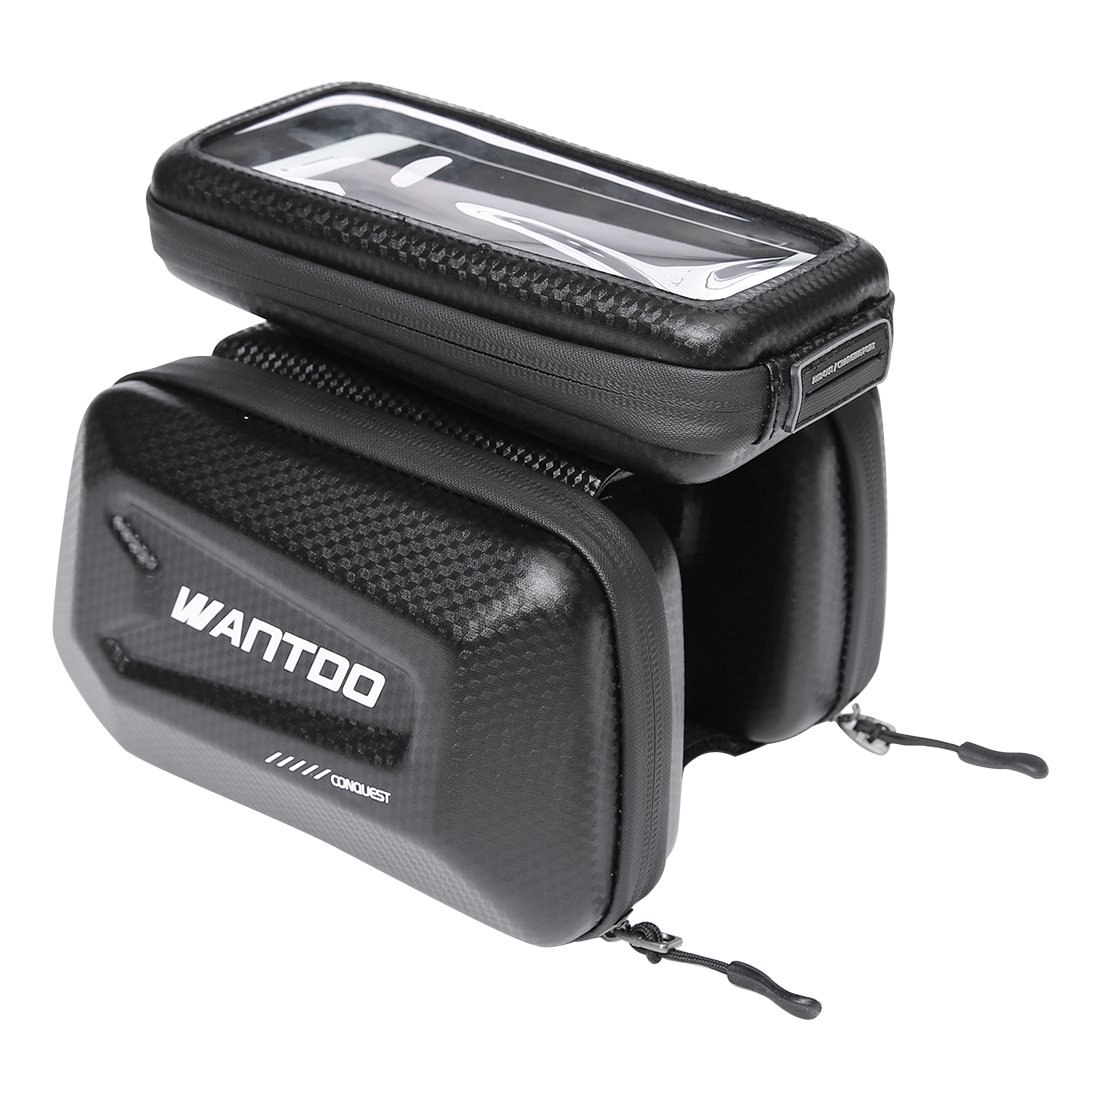 Wantdo Bike Bag Large Capacity Cycling Accessories,Hard Shell Waterproof Big Touch Screen Cell Phone Holder Bicycle Top Tube Bag